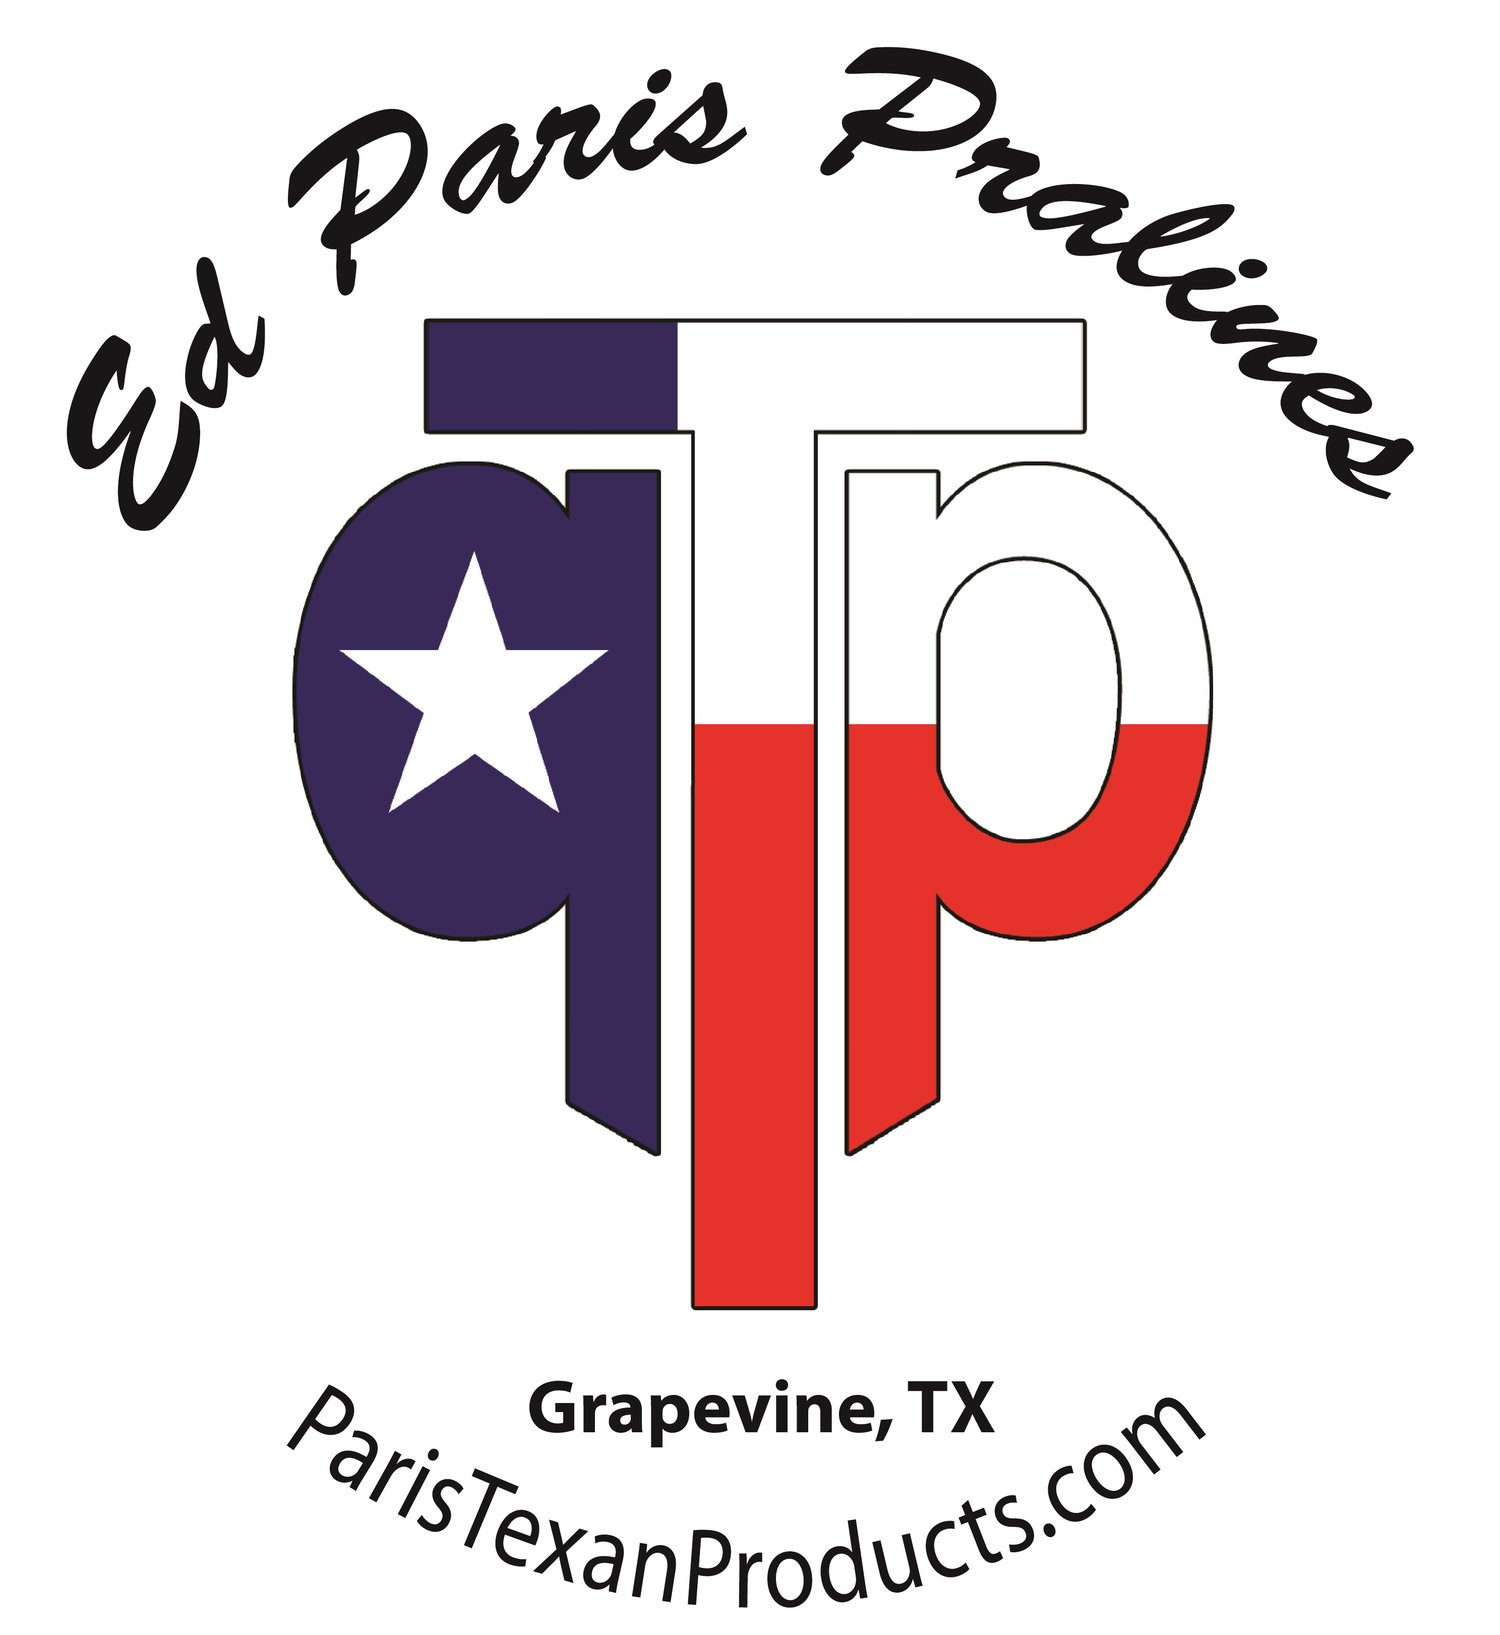 Paris Texan Products, LLC